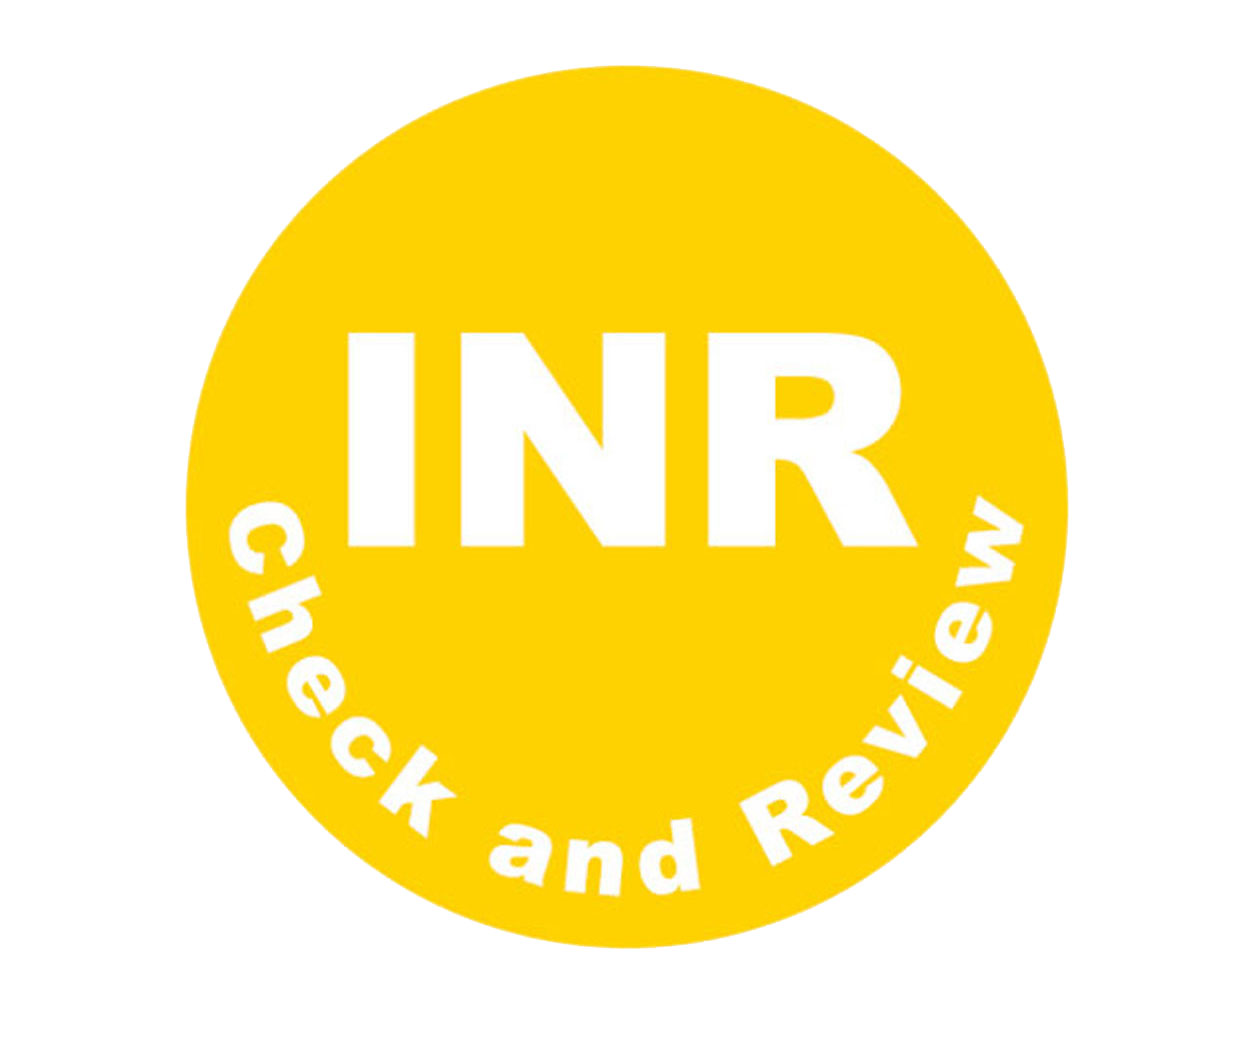 GREAT VALUE - Internationally Normalised Ratio Prescription Alert Stickers - Pack of 1000